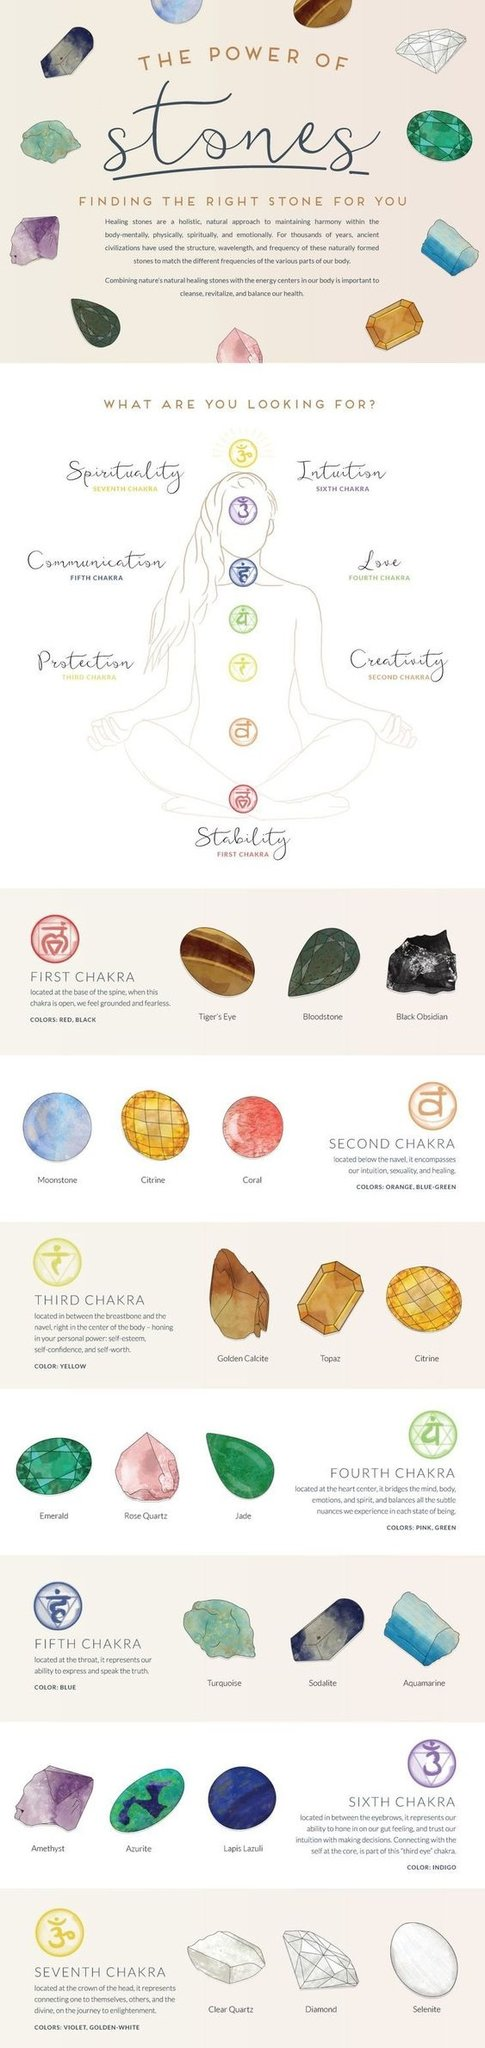 Stones for the 7 Chakras